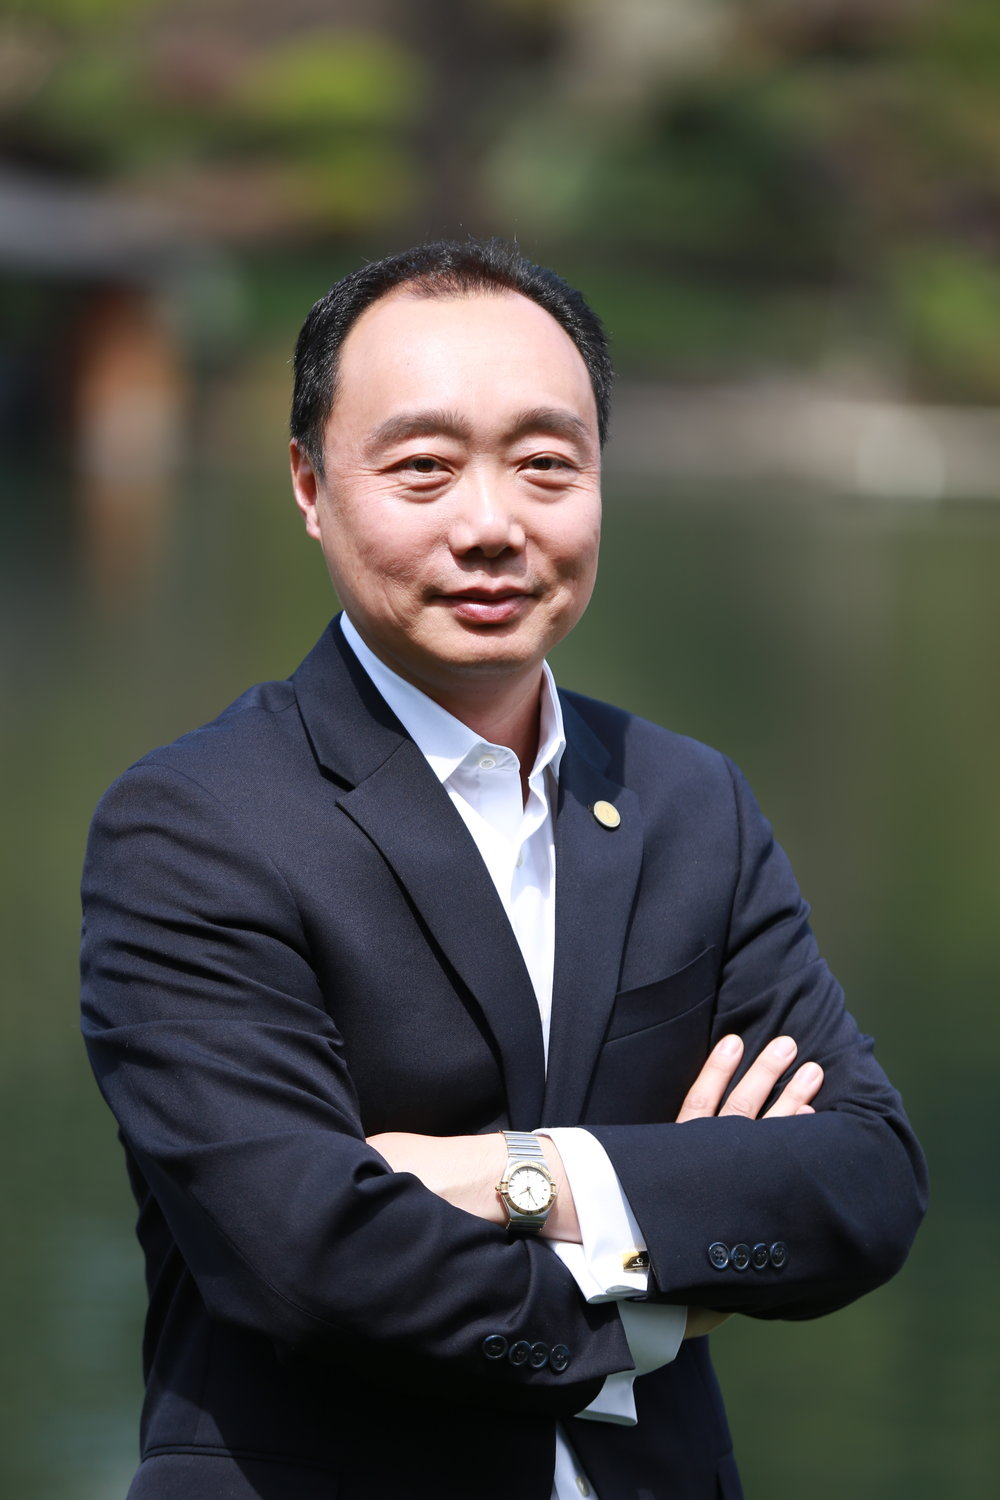 Top Producer    波特兰地区最佳 经纪之一 - Top Producer, Cascade Sotheby's Asia Desk Vice President Michael Zhang has developed a global reputation as the top luxury/Investment real estate agent for Lake Oswego and Portland area. Integrity, Loyalty,Professionalism and informative have help Michael win many international , out of state buyer and local client's trust. Highest level - DiamondPlatinum Member of Portland Metropolitan Association of Realtors®.